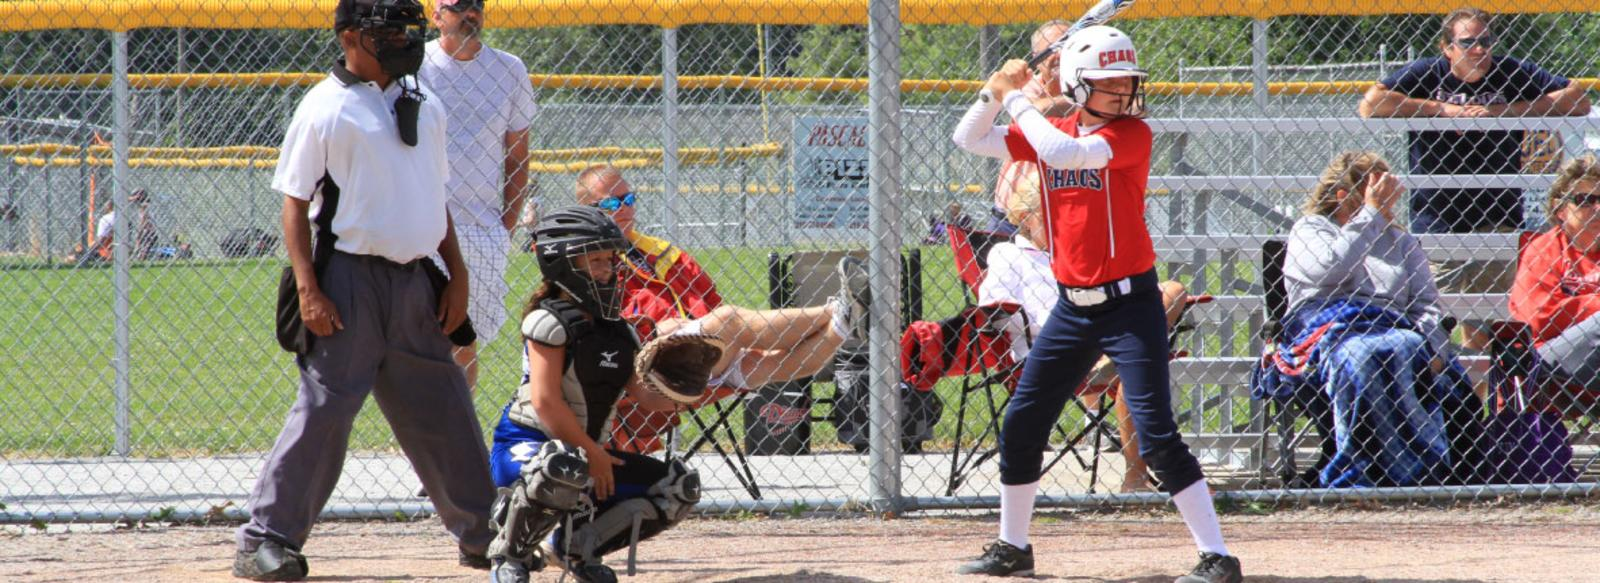 NSA-Softball-South-Shore-Sports